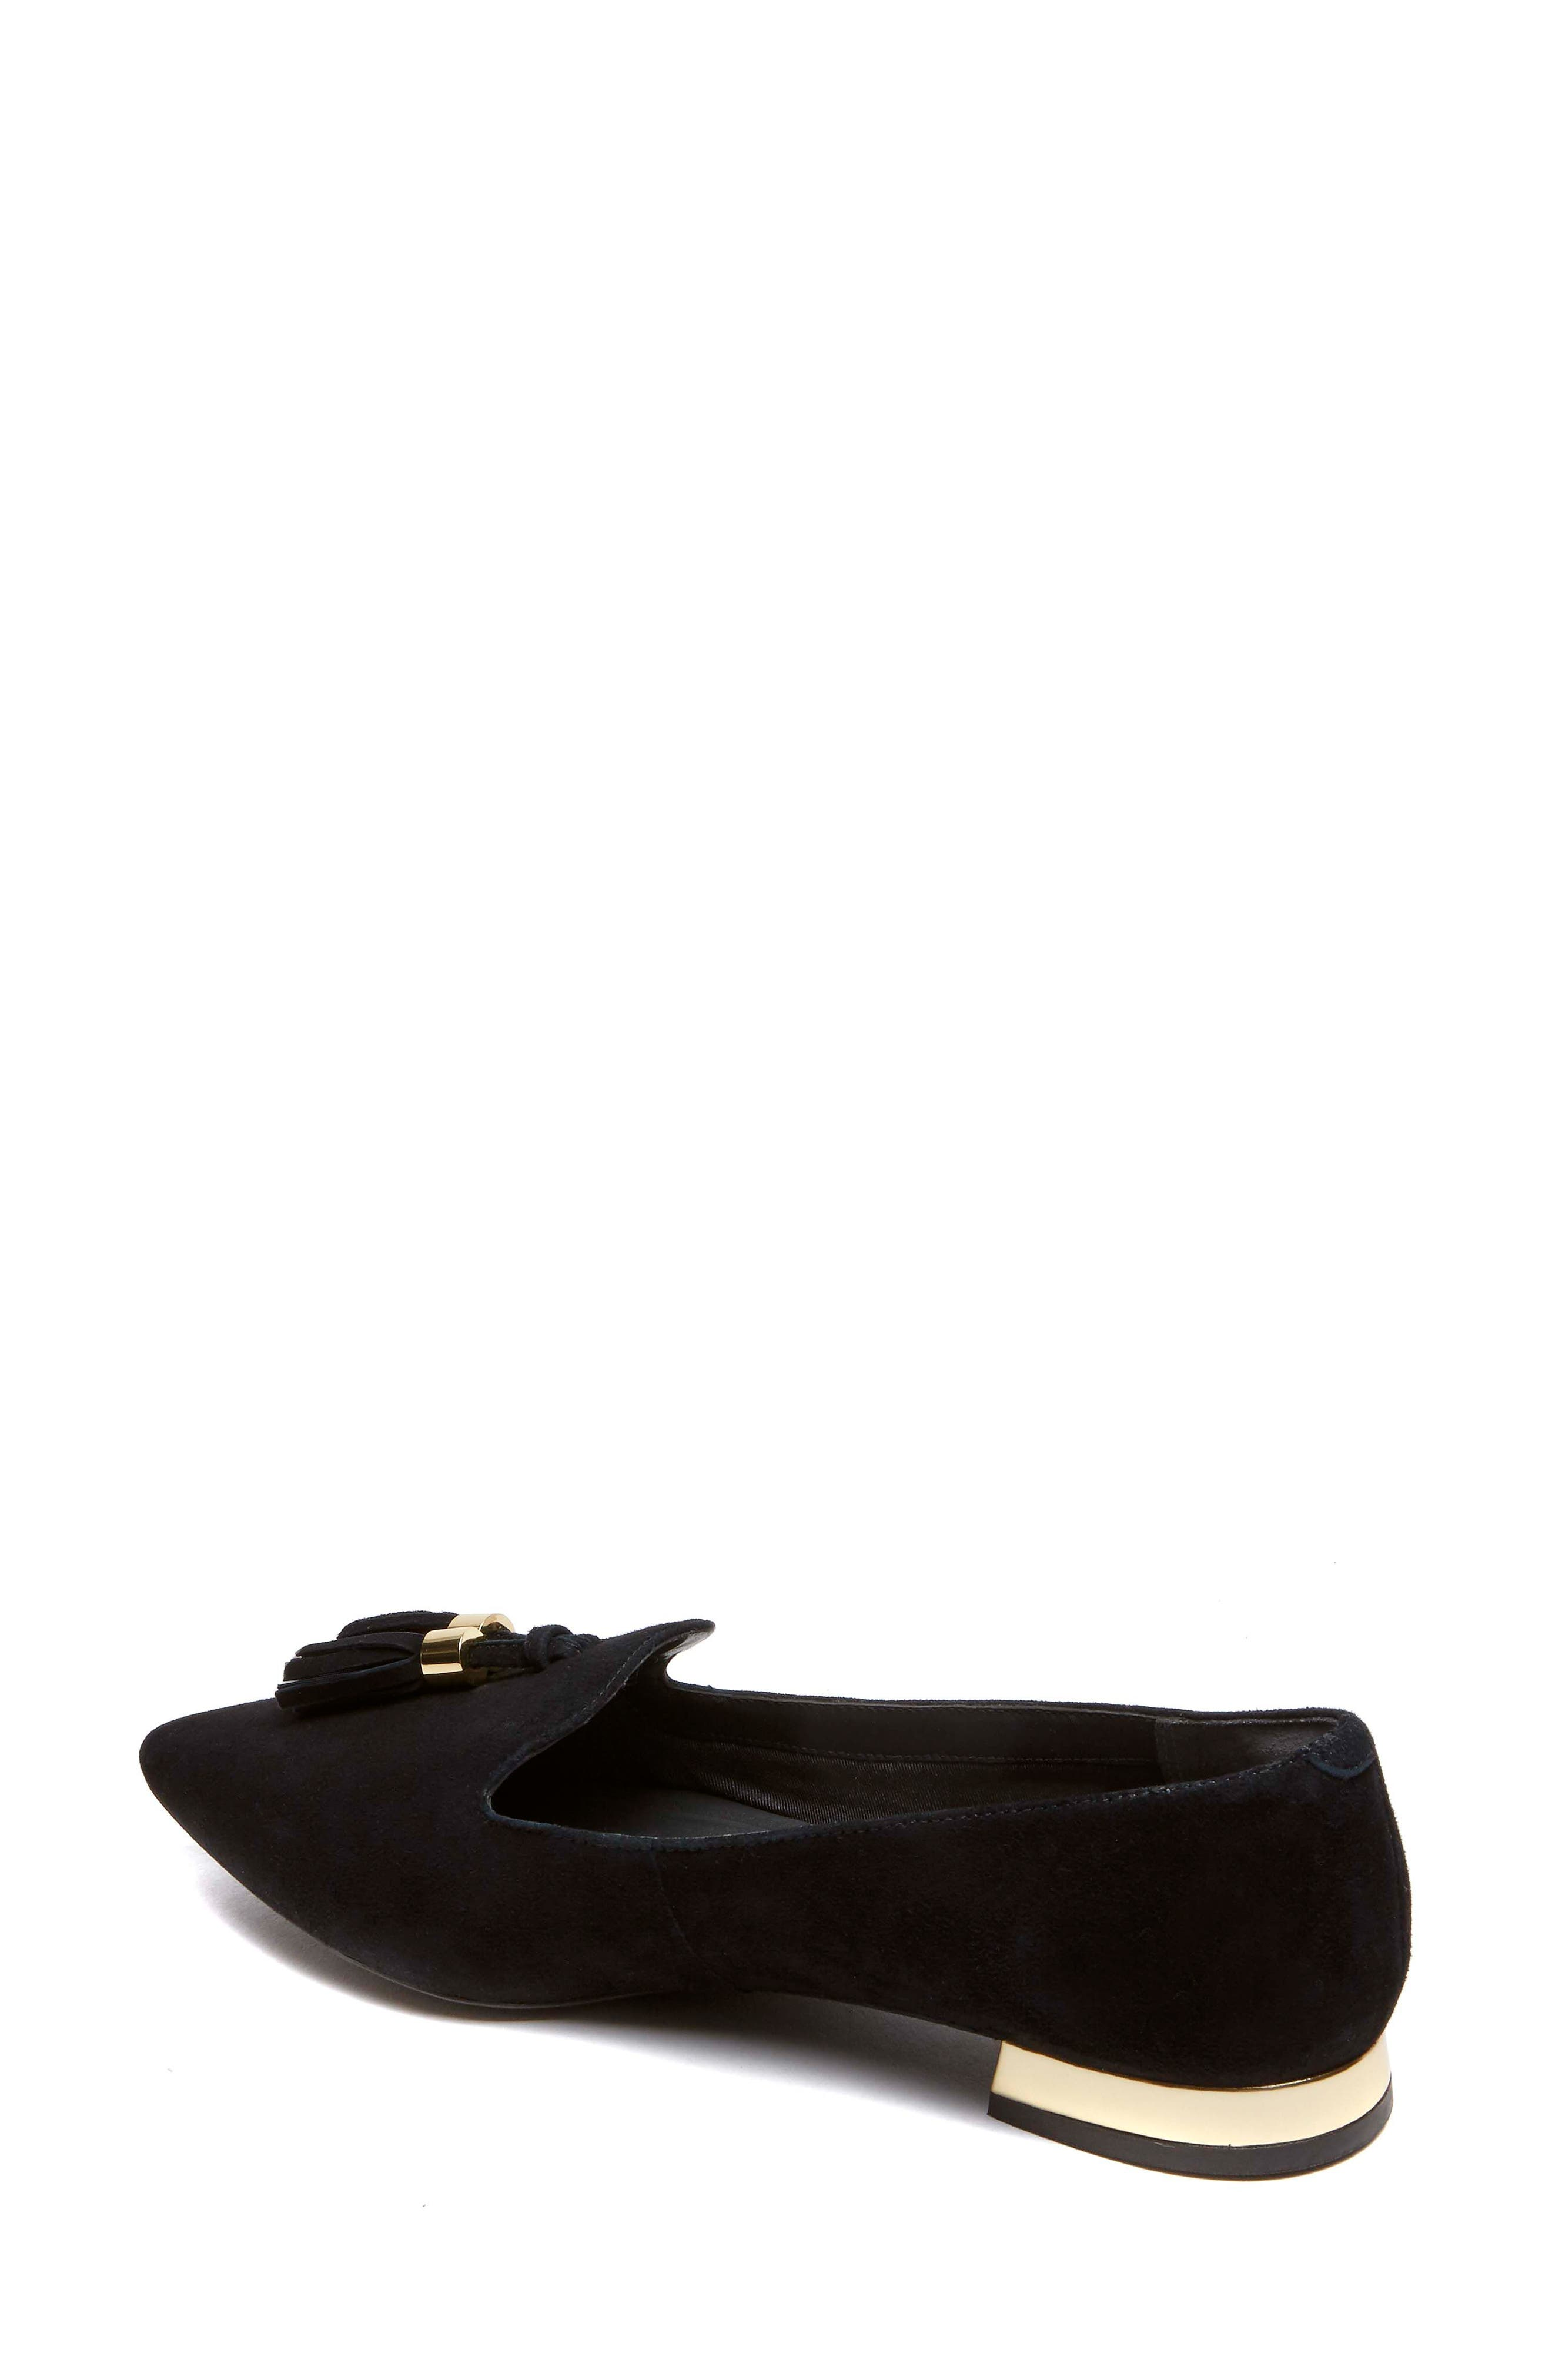 Total Motion Zuly Luxe Pointy Toe Loafer,                             Alternate thumbnail 2, color,                             BLACK SUEDE